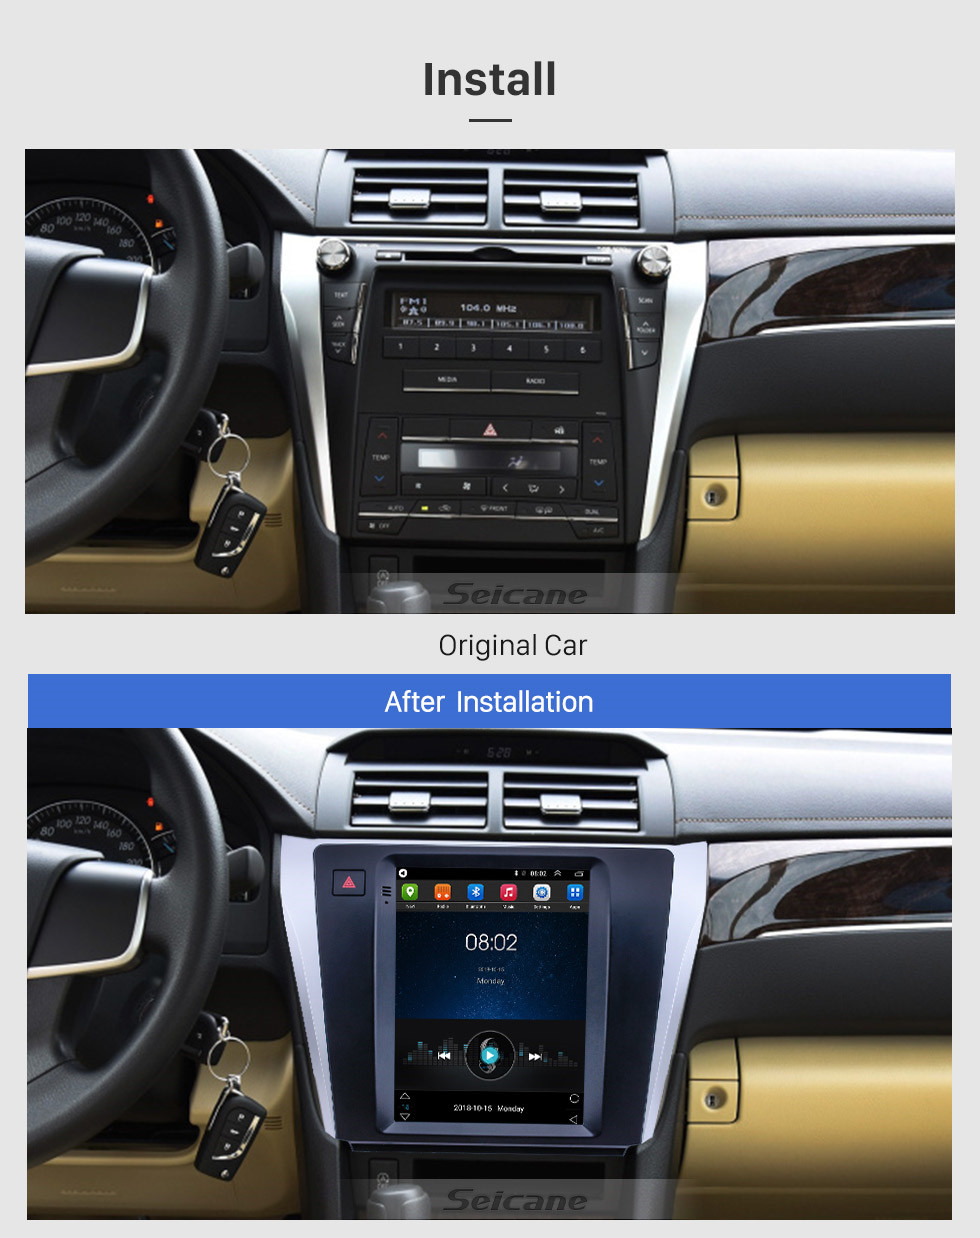 Seicane 9.7 inch Android 9.1 GPS Navigation Radio for 2015-2017 Toyota Camry with HD Touchscreen Bluetooth AUX support Carplay OBD2